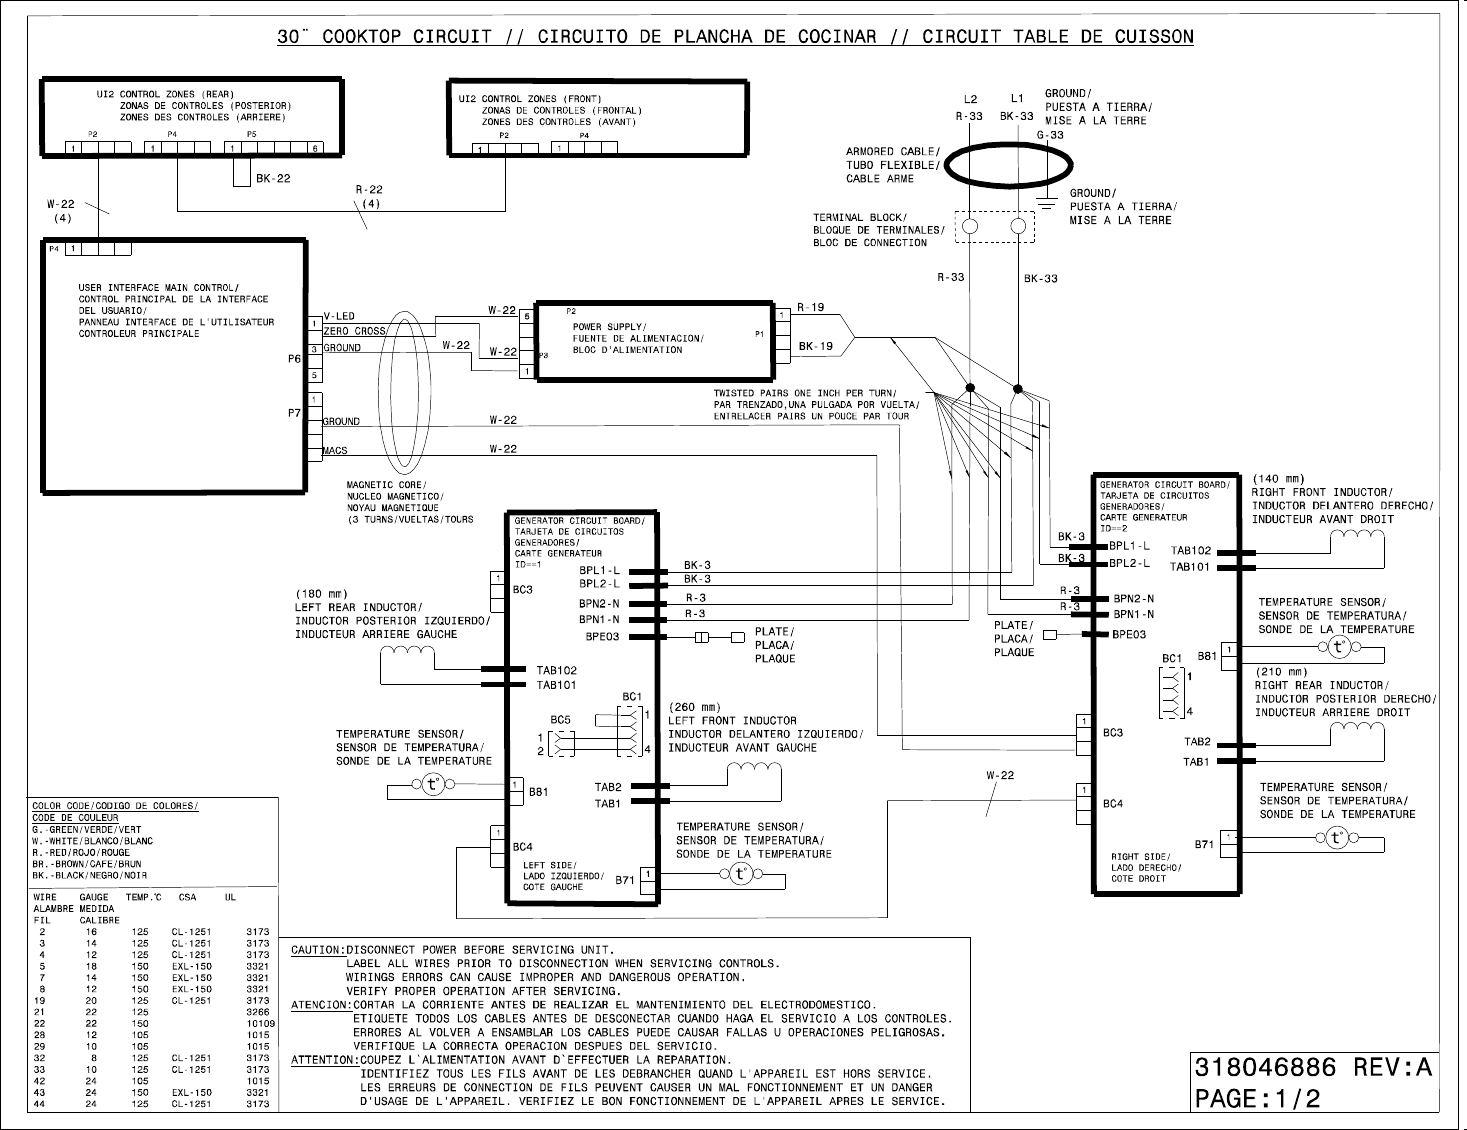 electrolux vacuum wiring diagram Download-electrolux vacuum wiring diagram Collection 2100 20wiring 20diagram In Electrolux Wiring 14 s DOWNLOAD Wiring Diagram 15-r